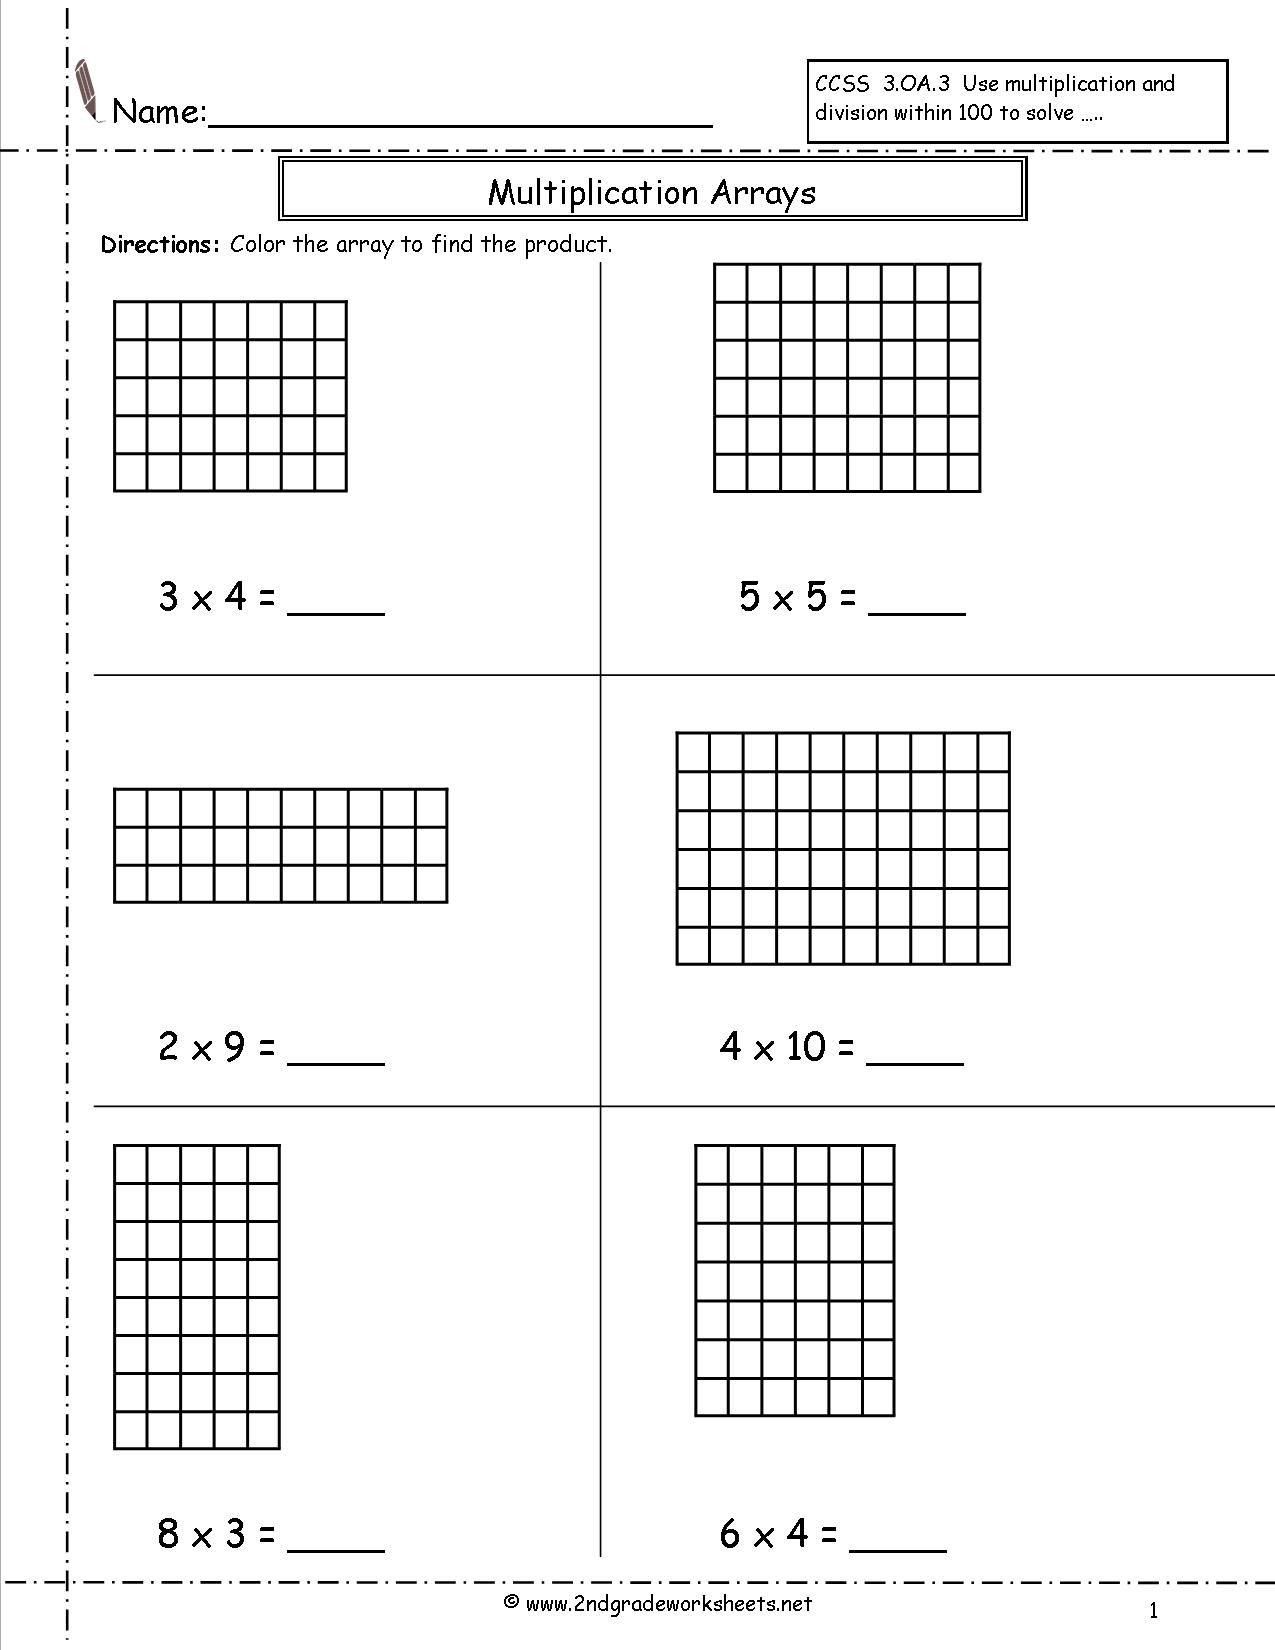 Multiplication Array Worksheets 3rd Grade Multiplication Arrays Worksheets